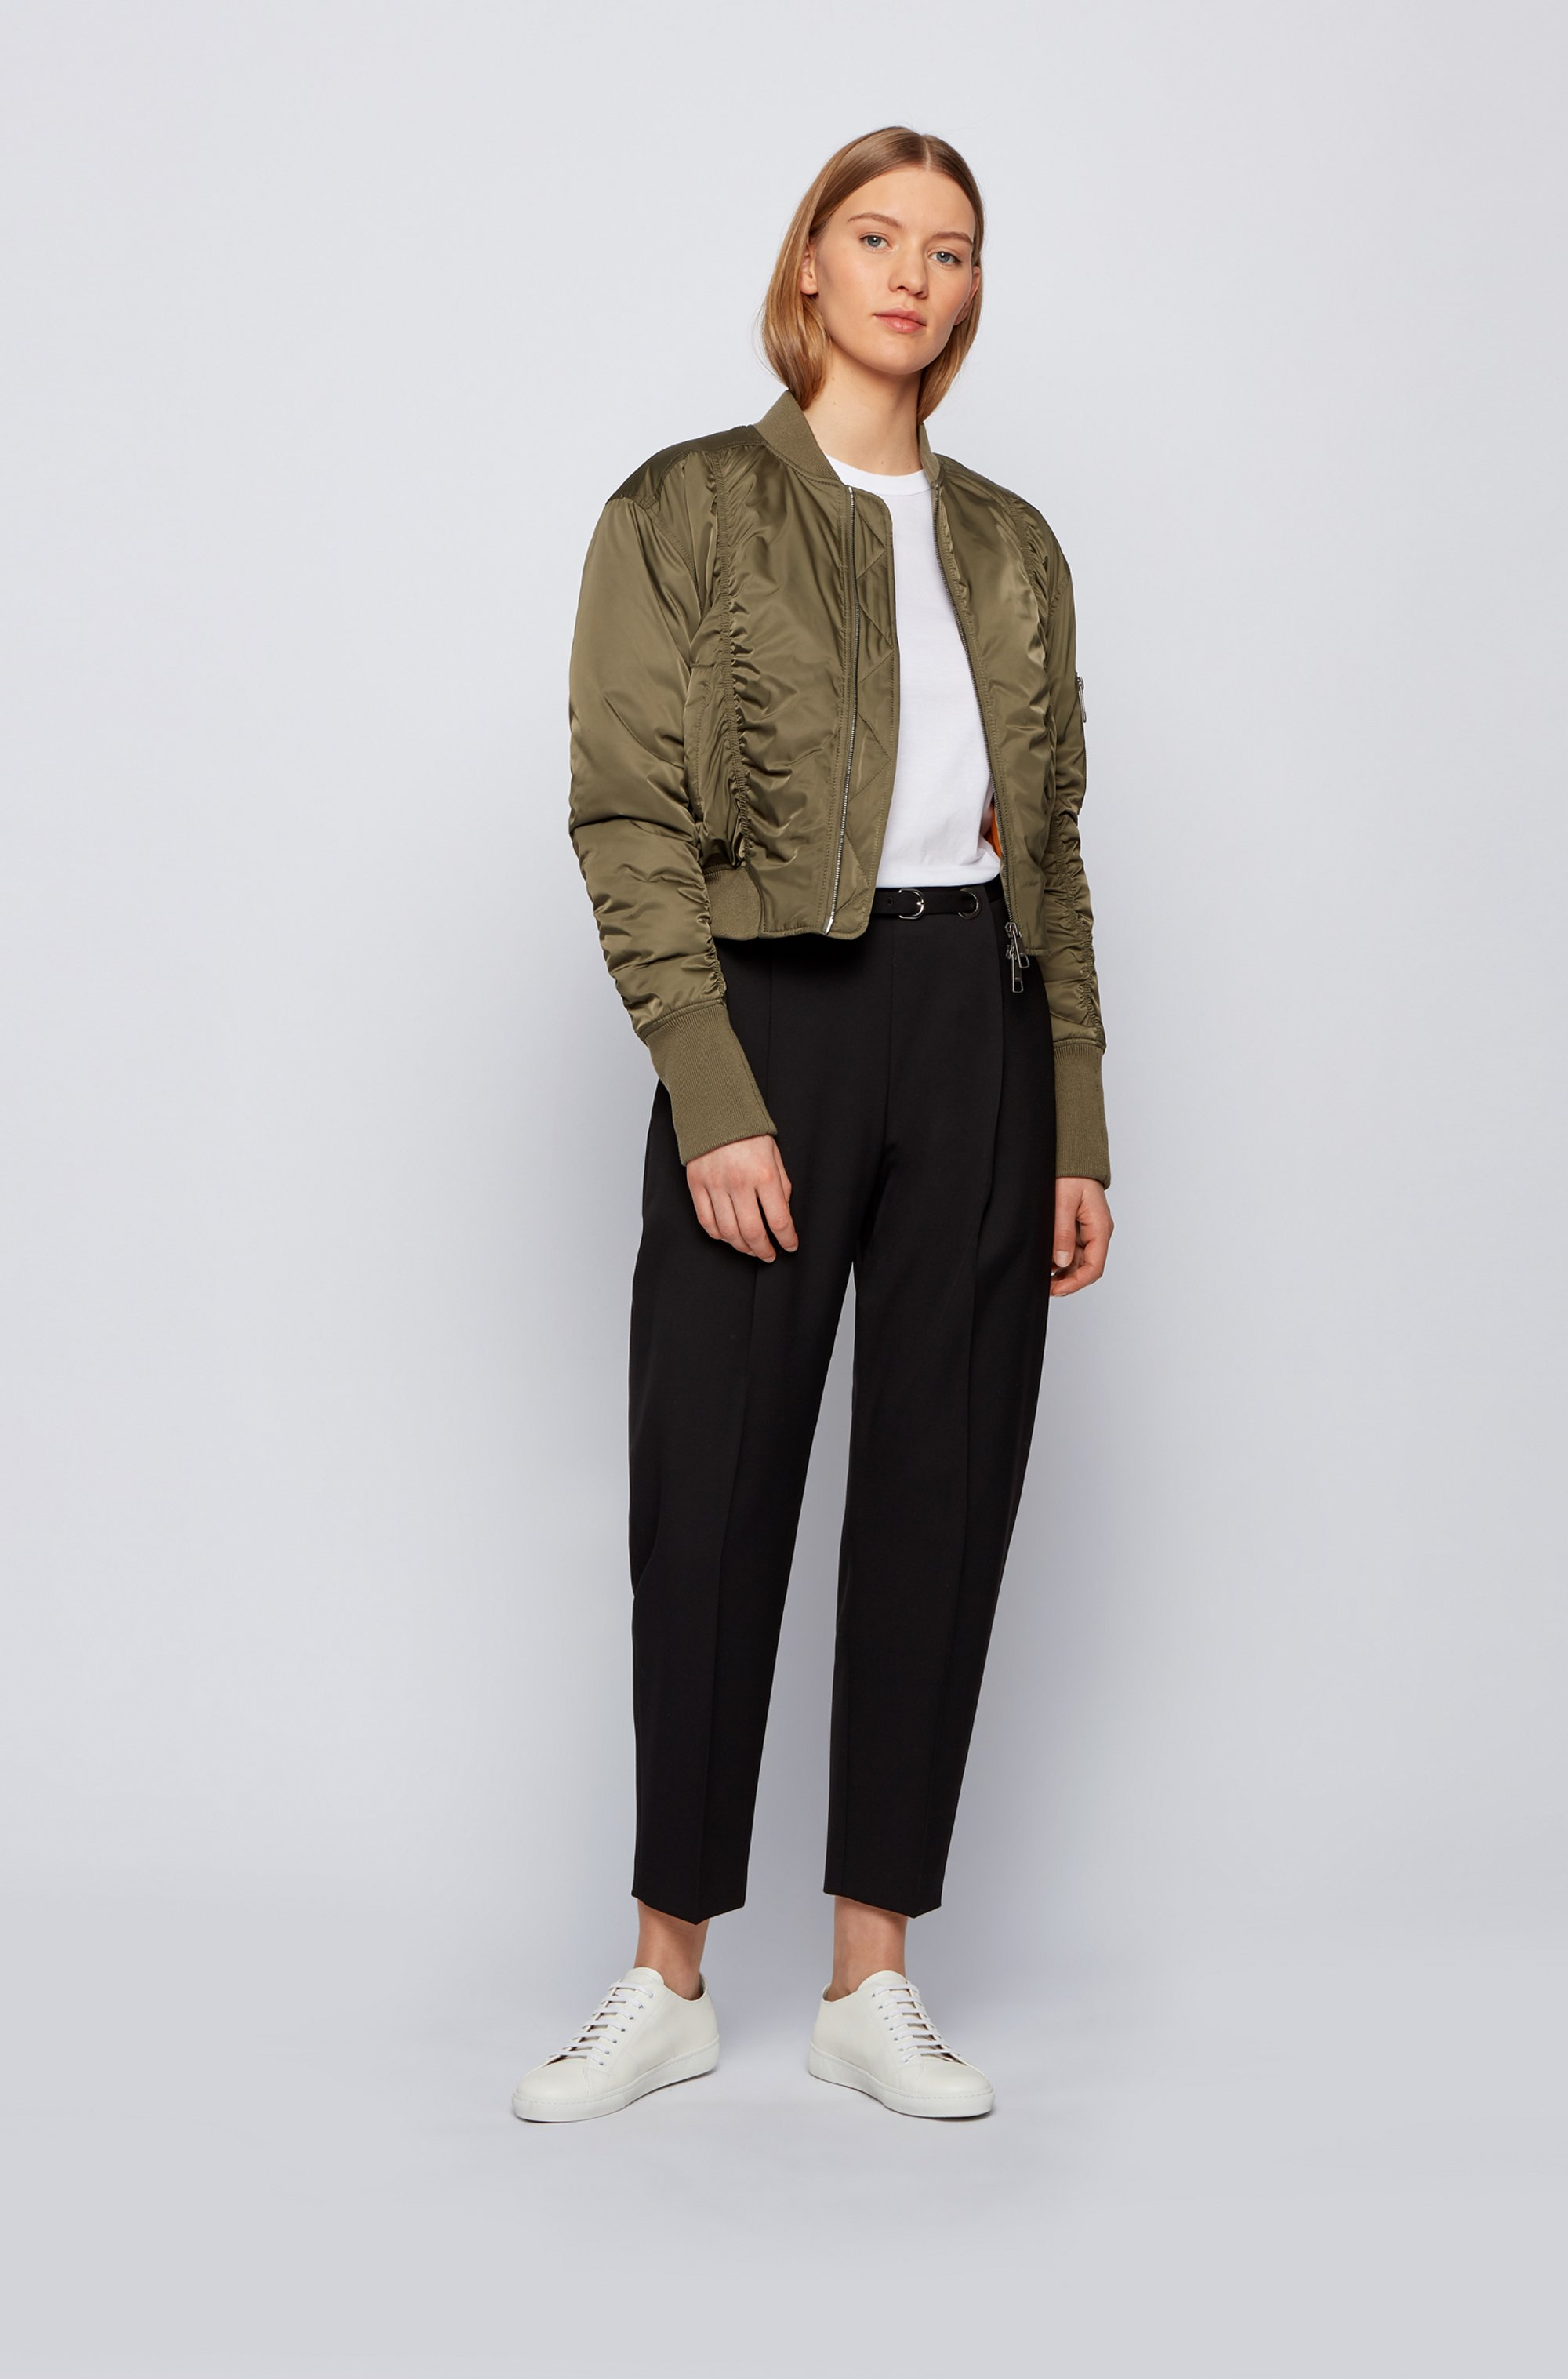 Ruched bomber jacket with patched sleeve pocket